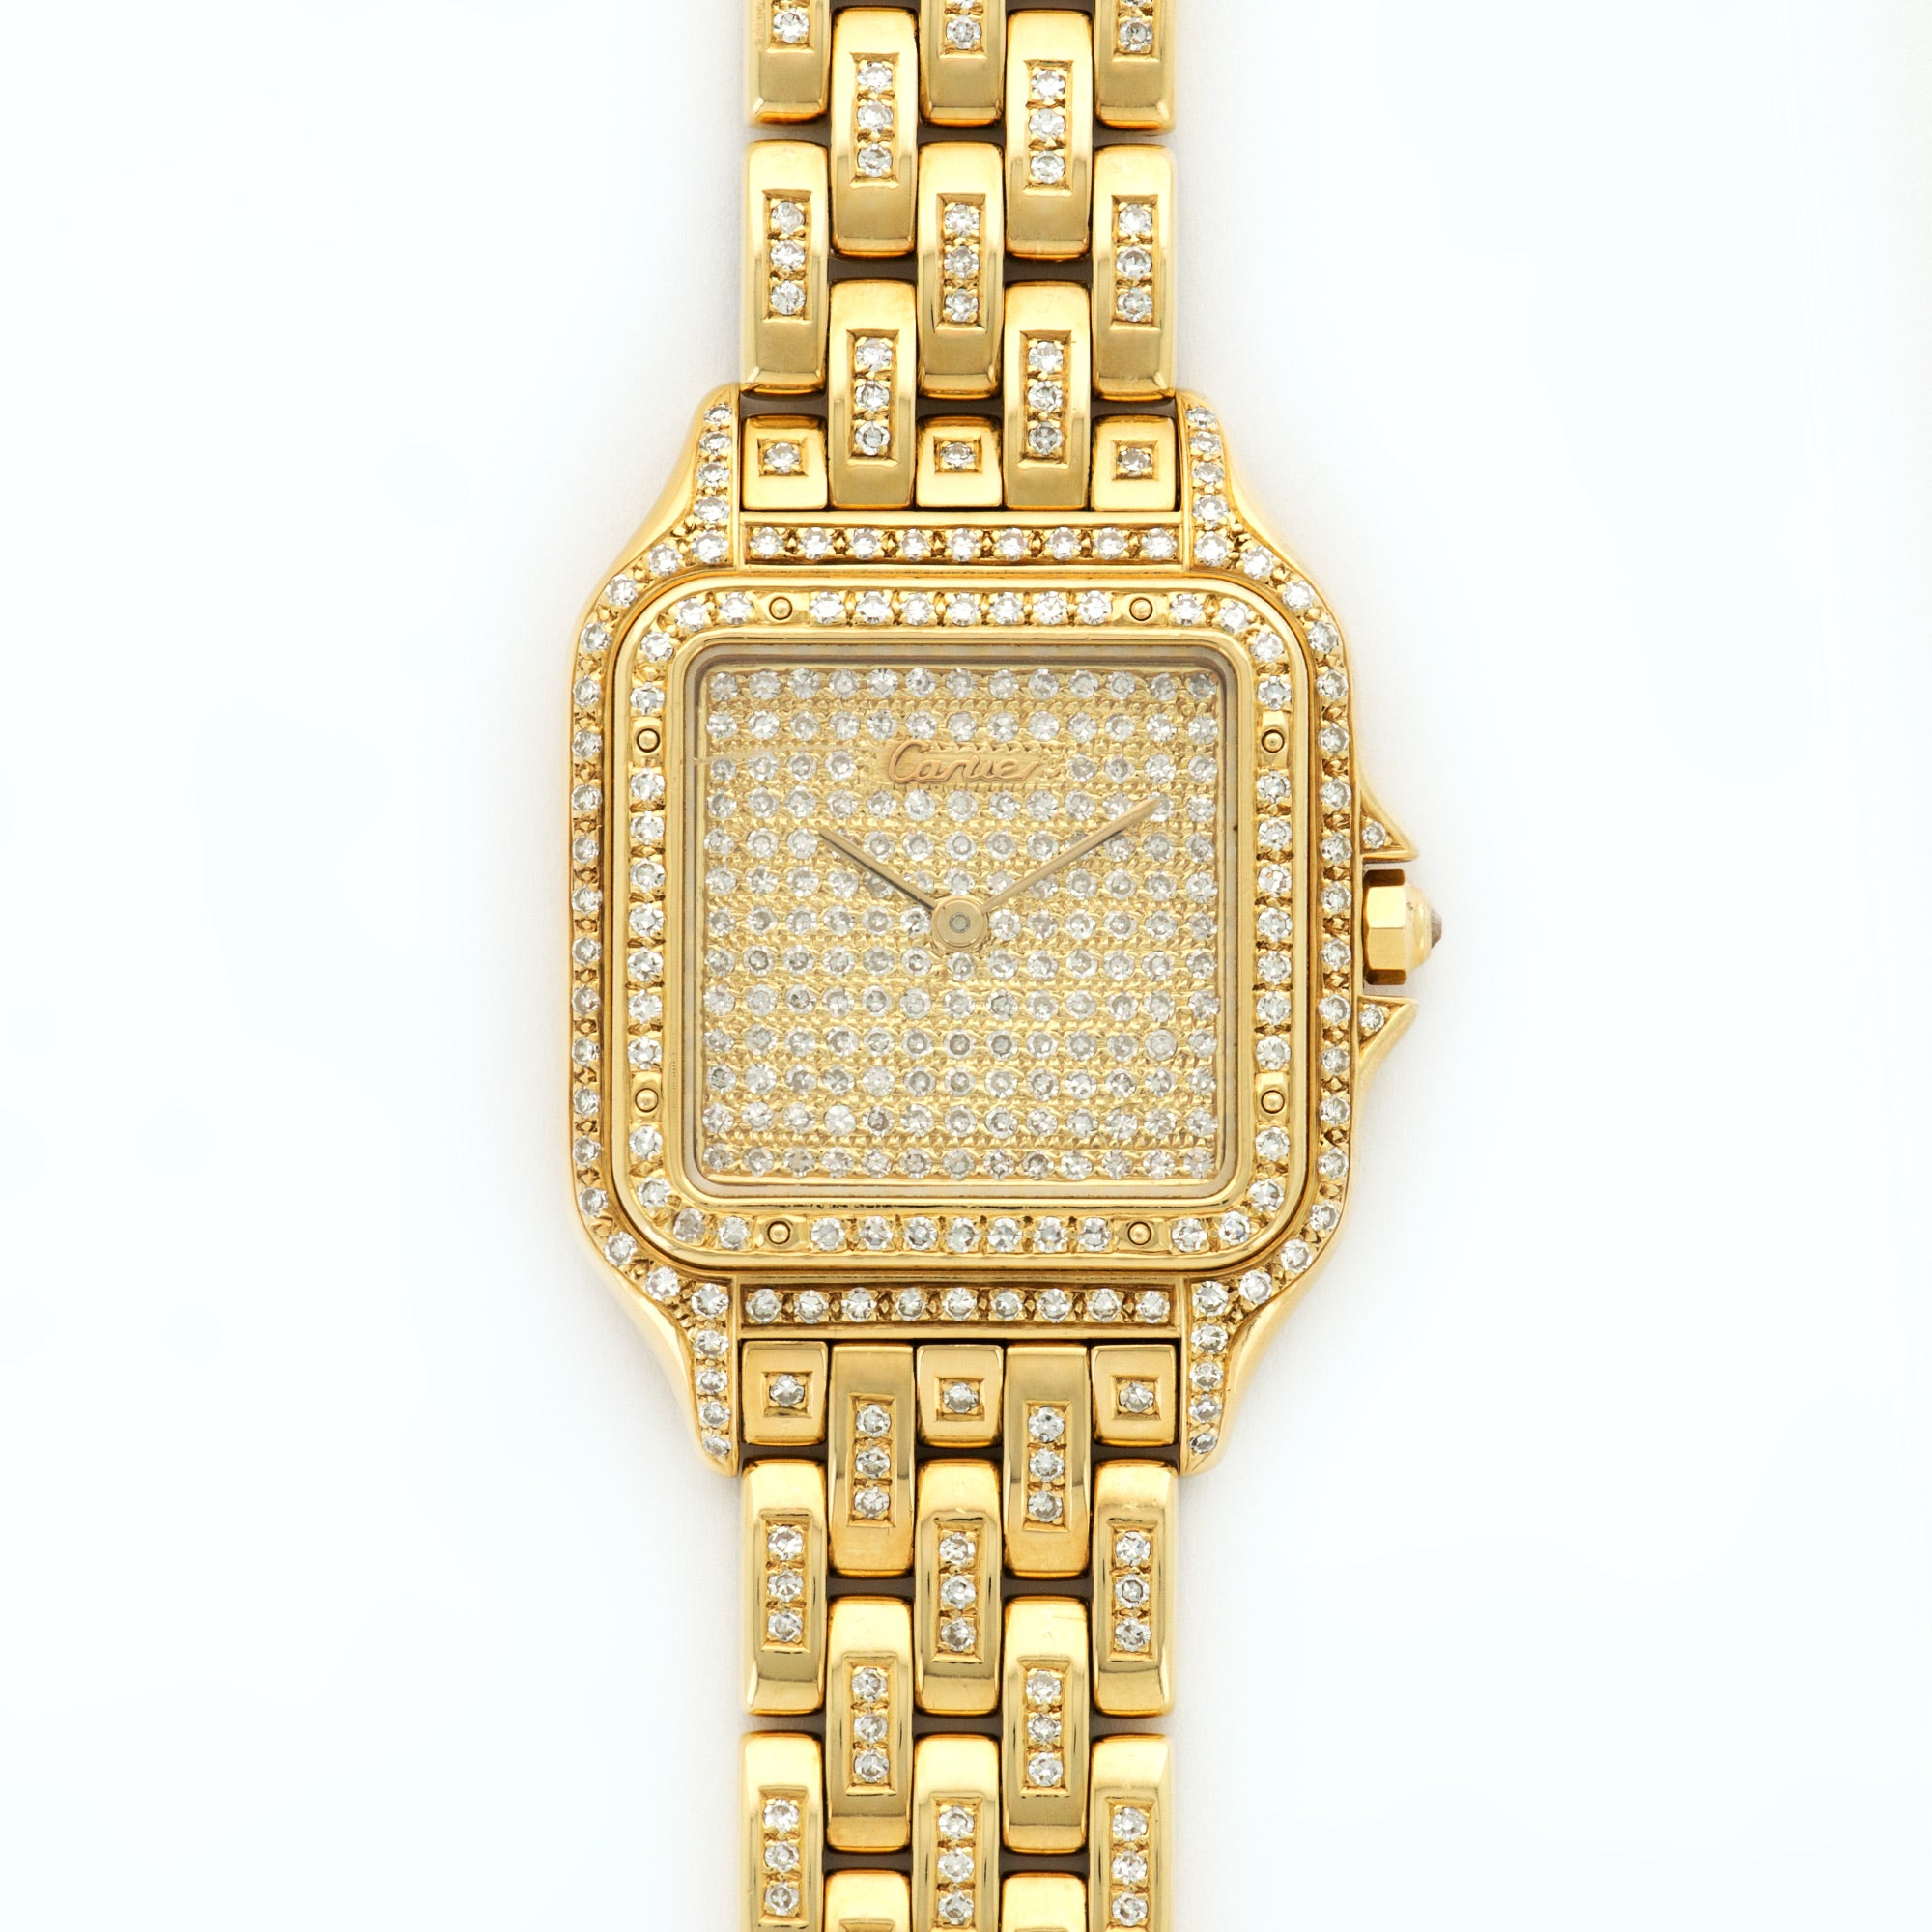 Cartier Panthere N/A 18k YG  Excellent Unisex 18k YG Custom Pave Diamonds 28.8mm Quartz 1990s Yellow Gold Bracelet with Custom Diamonds (7 3/4) N/A